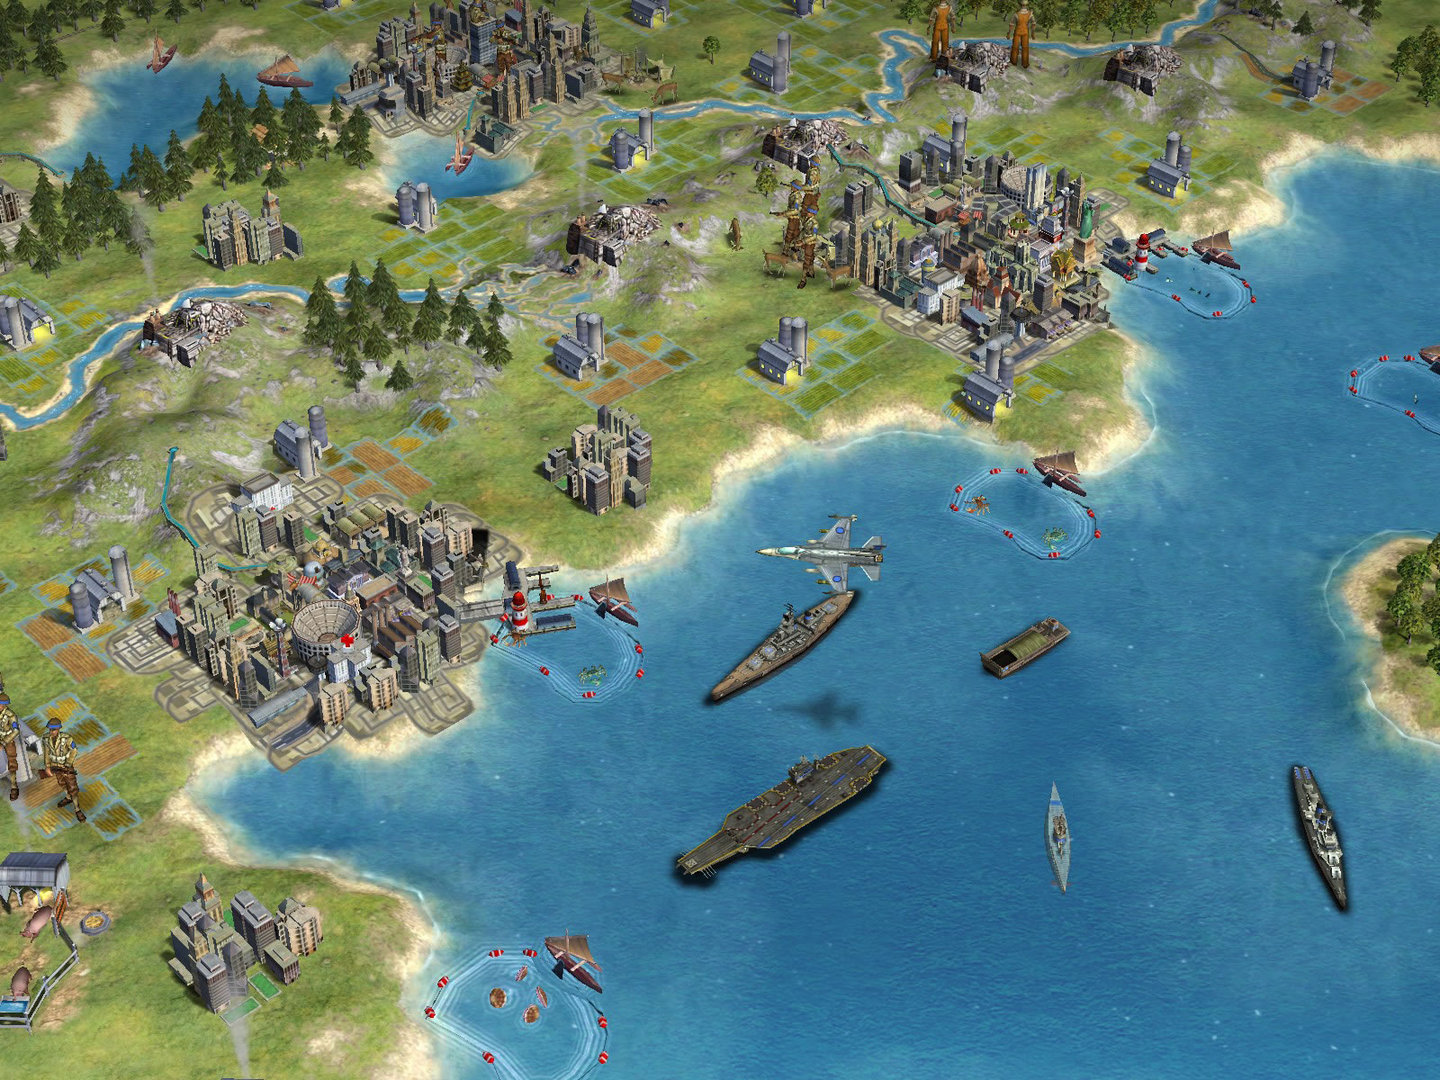 Civilization IV: Beyond the Sword (Steam key) @ RU